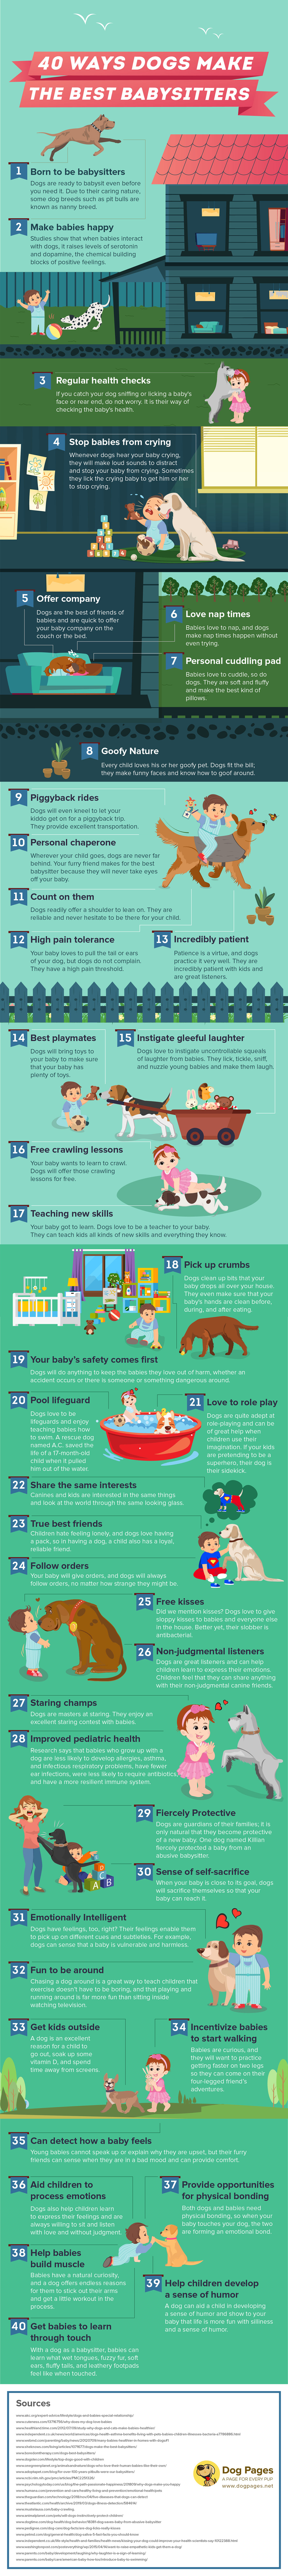 40 Reasons Why a Dog at Home is Great for Your Baby - Infographic